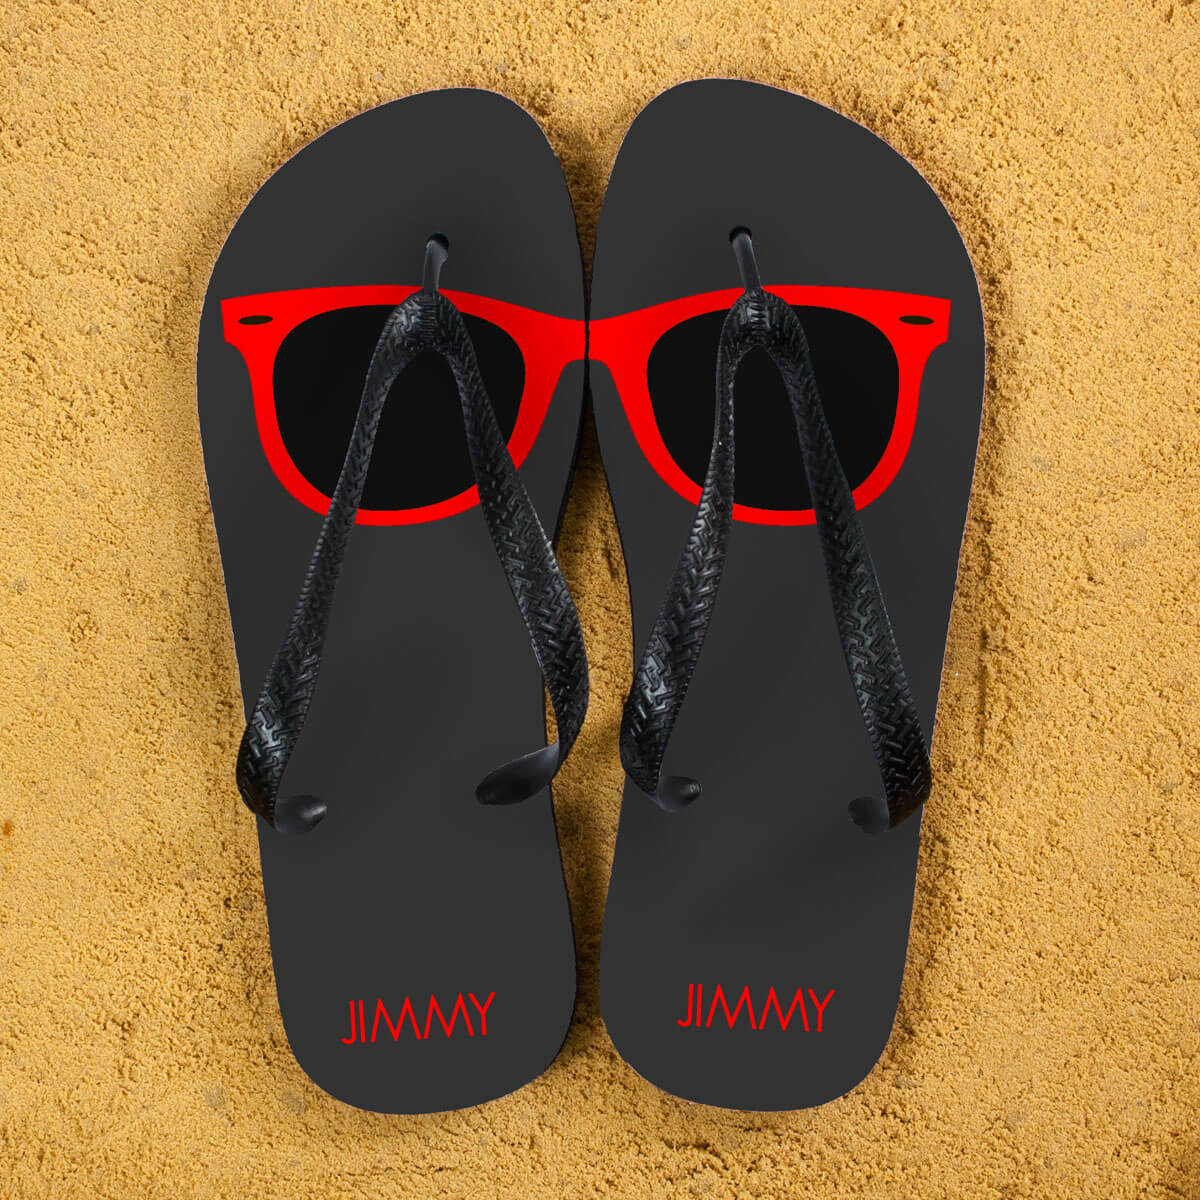 Personalised Adults Flip Flops (Grey & Red) – Sunglasses